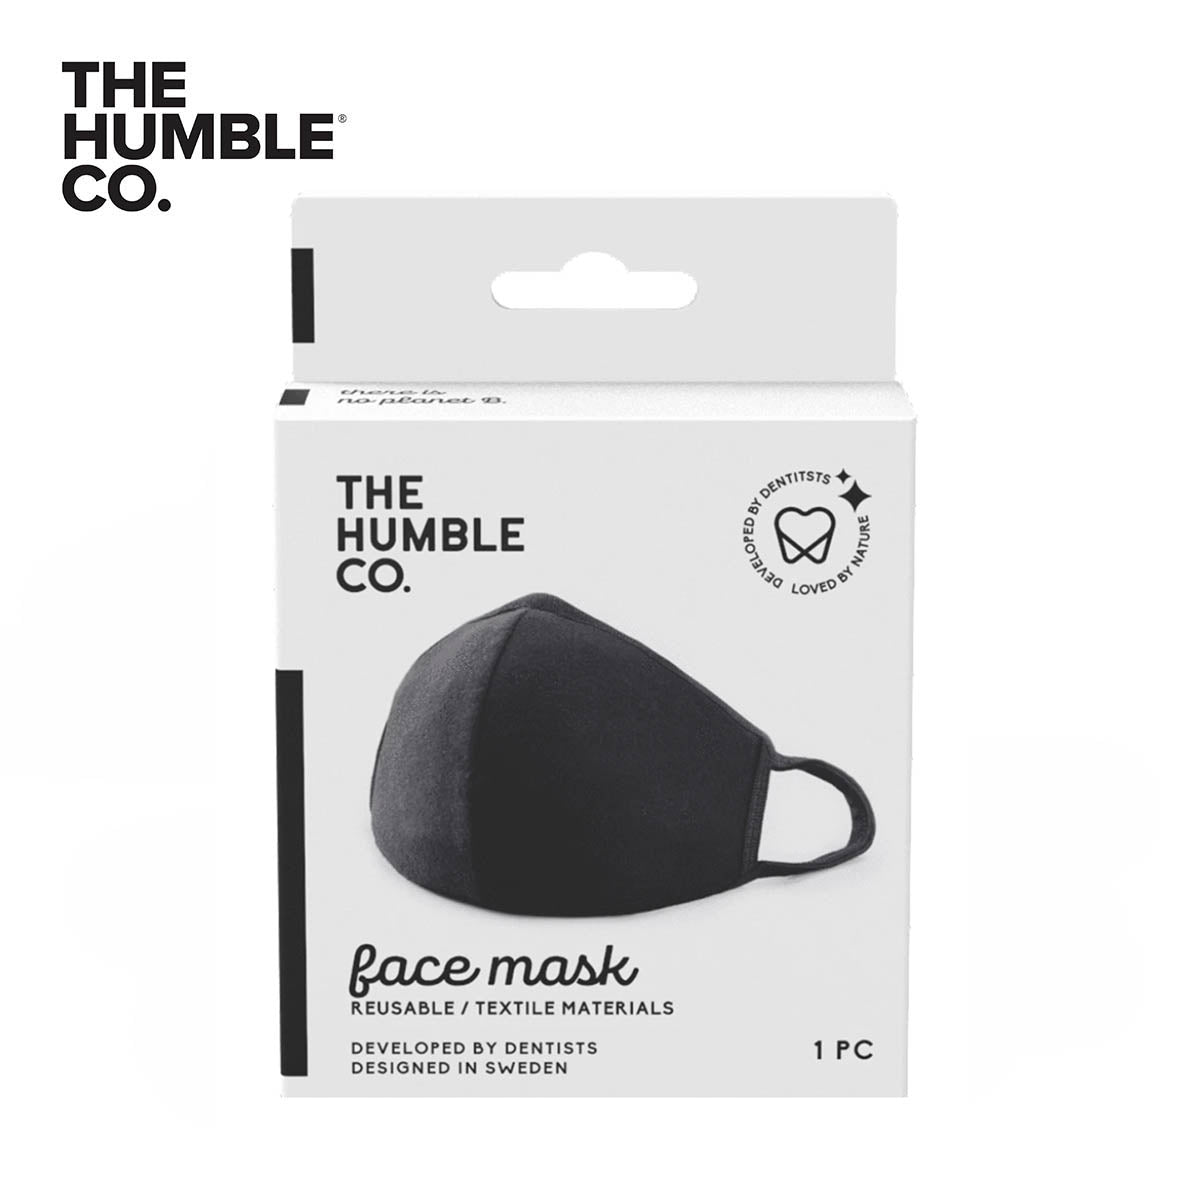 THE HUMBLE & CO Reusable Face Mask, Black